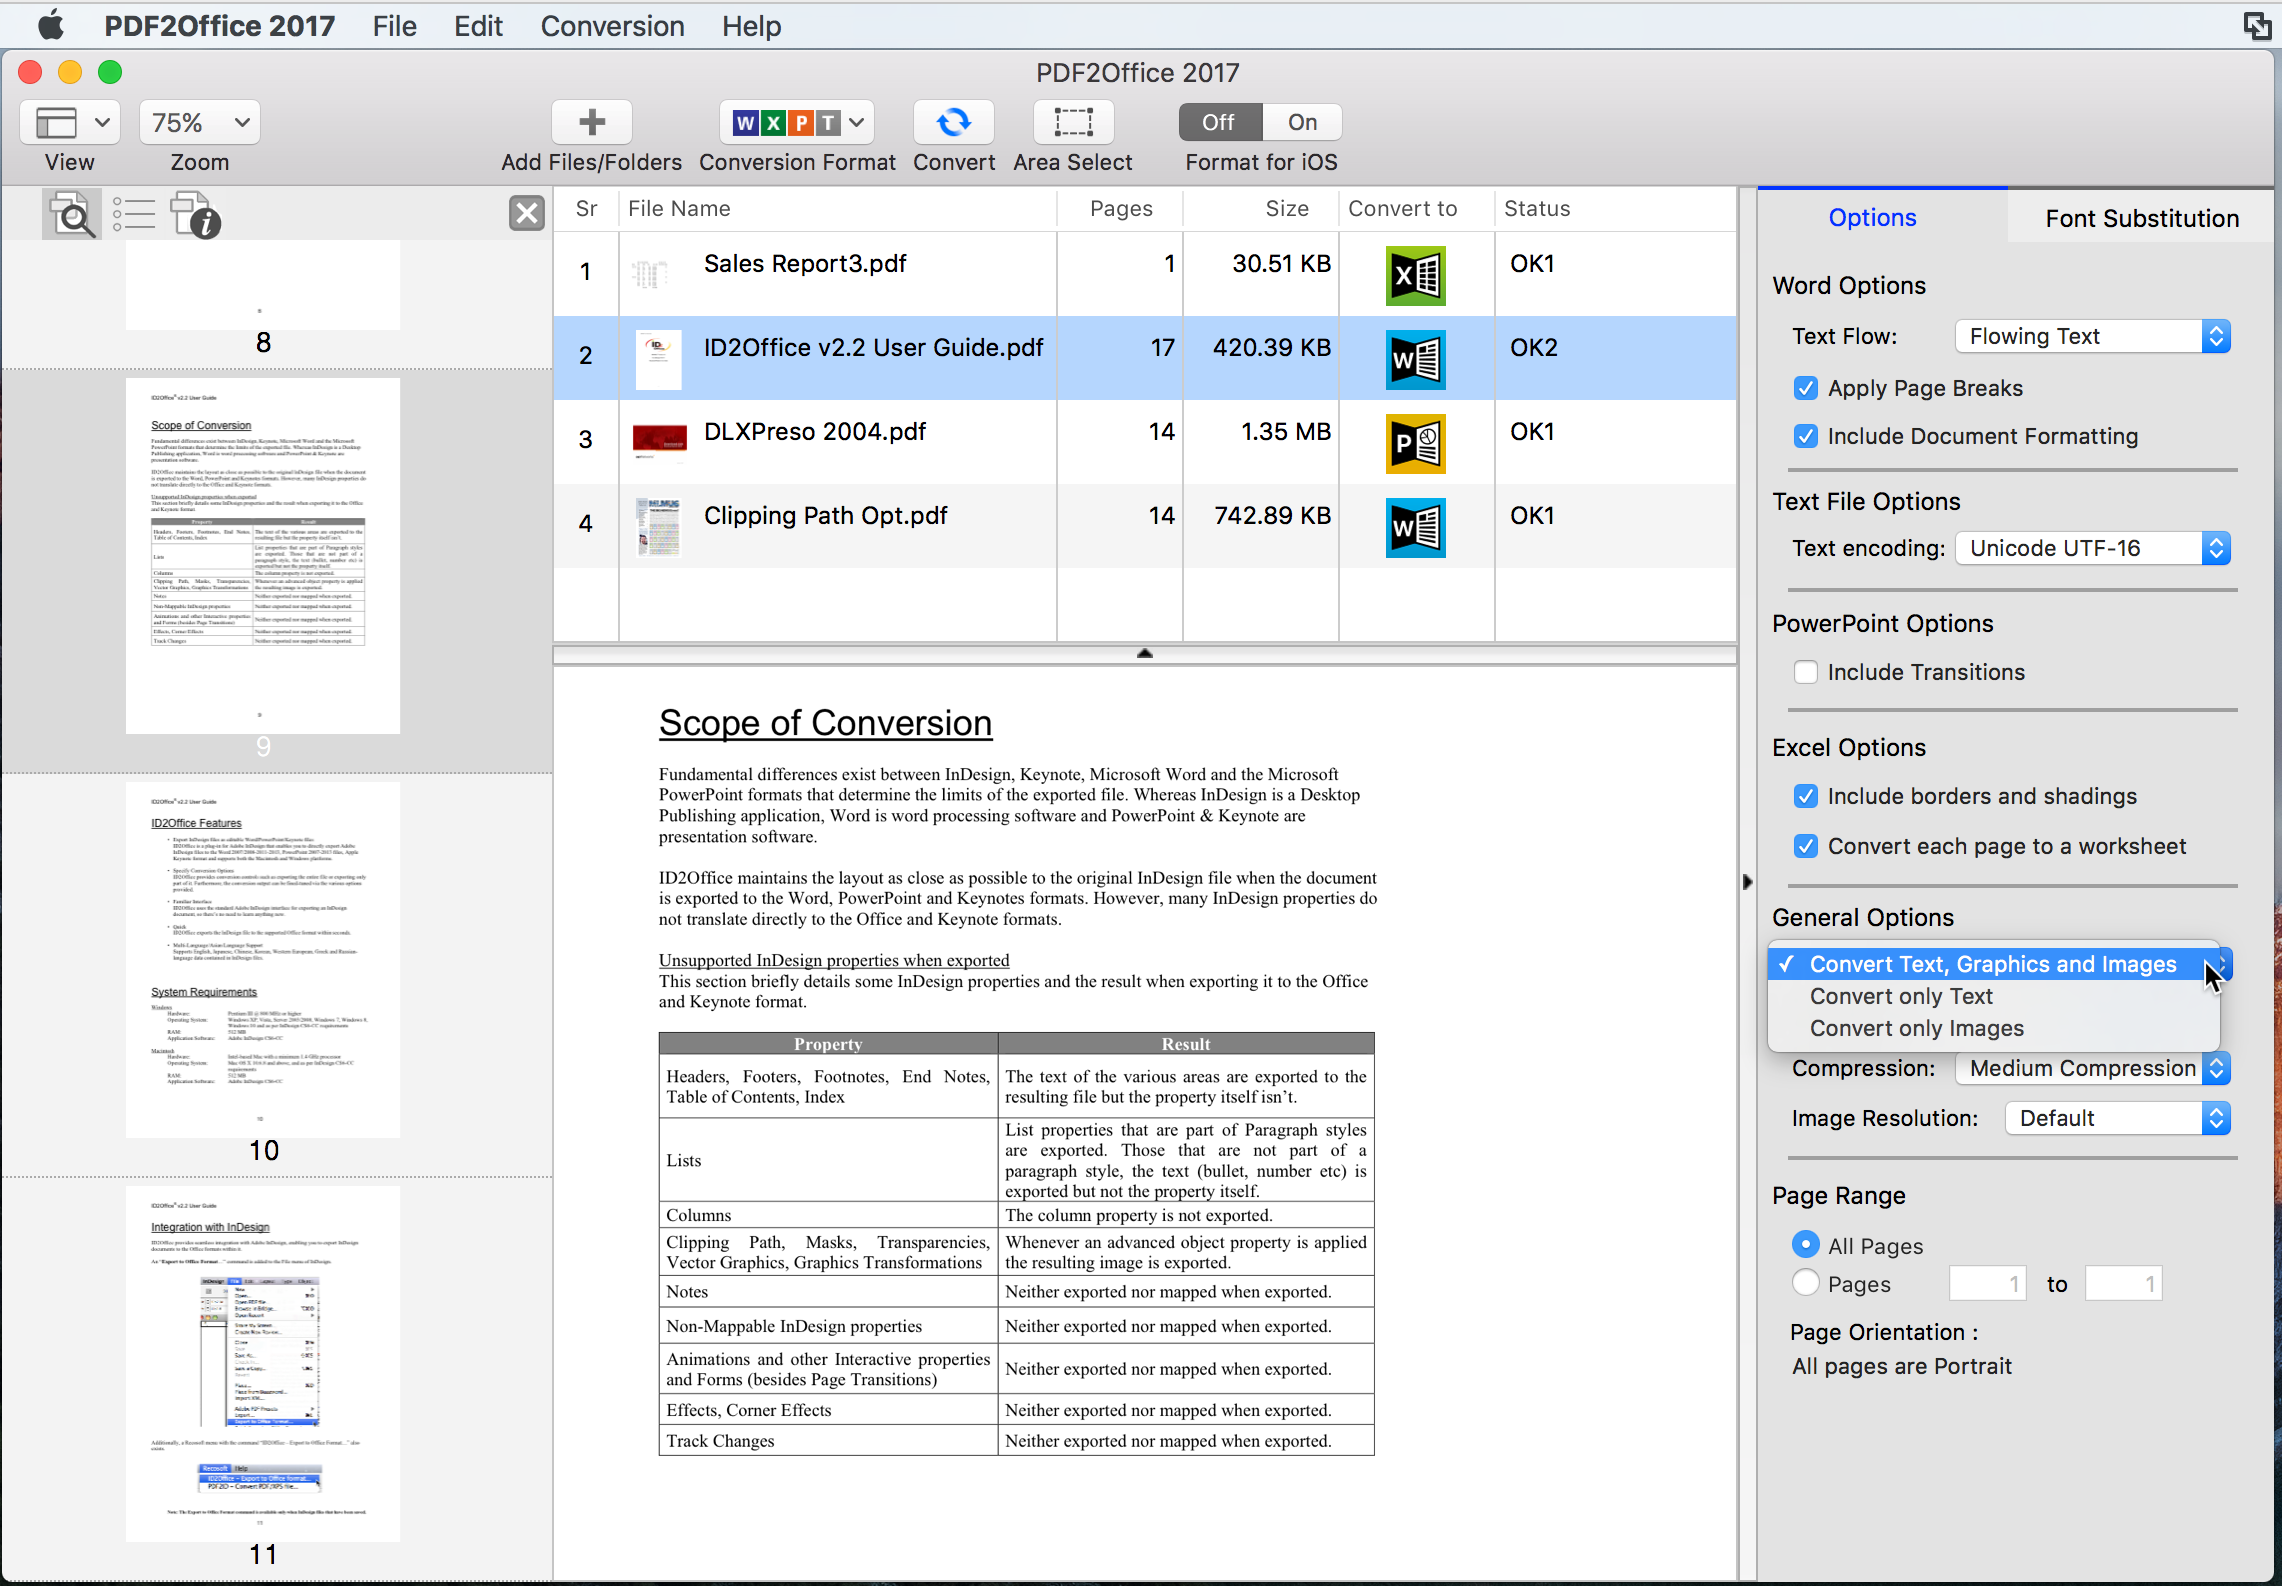 You can edit the PDF in Microsoft Word after converting the filec